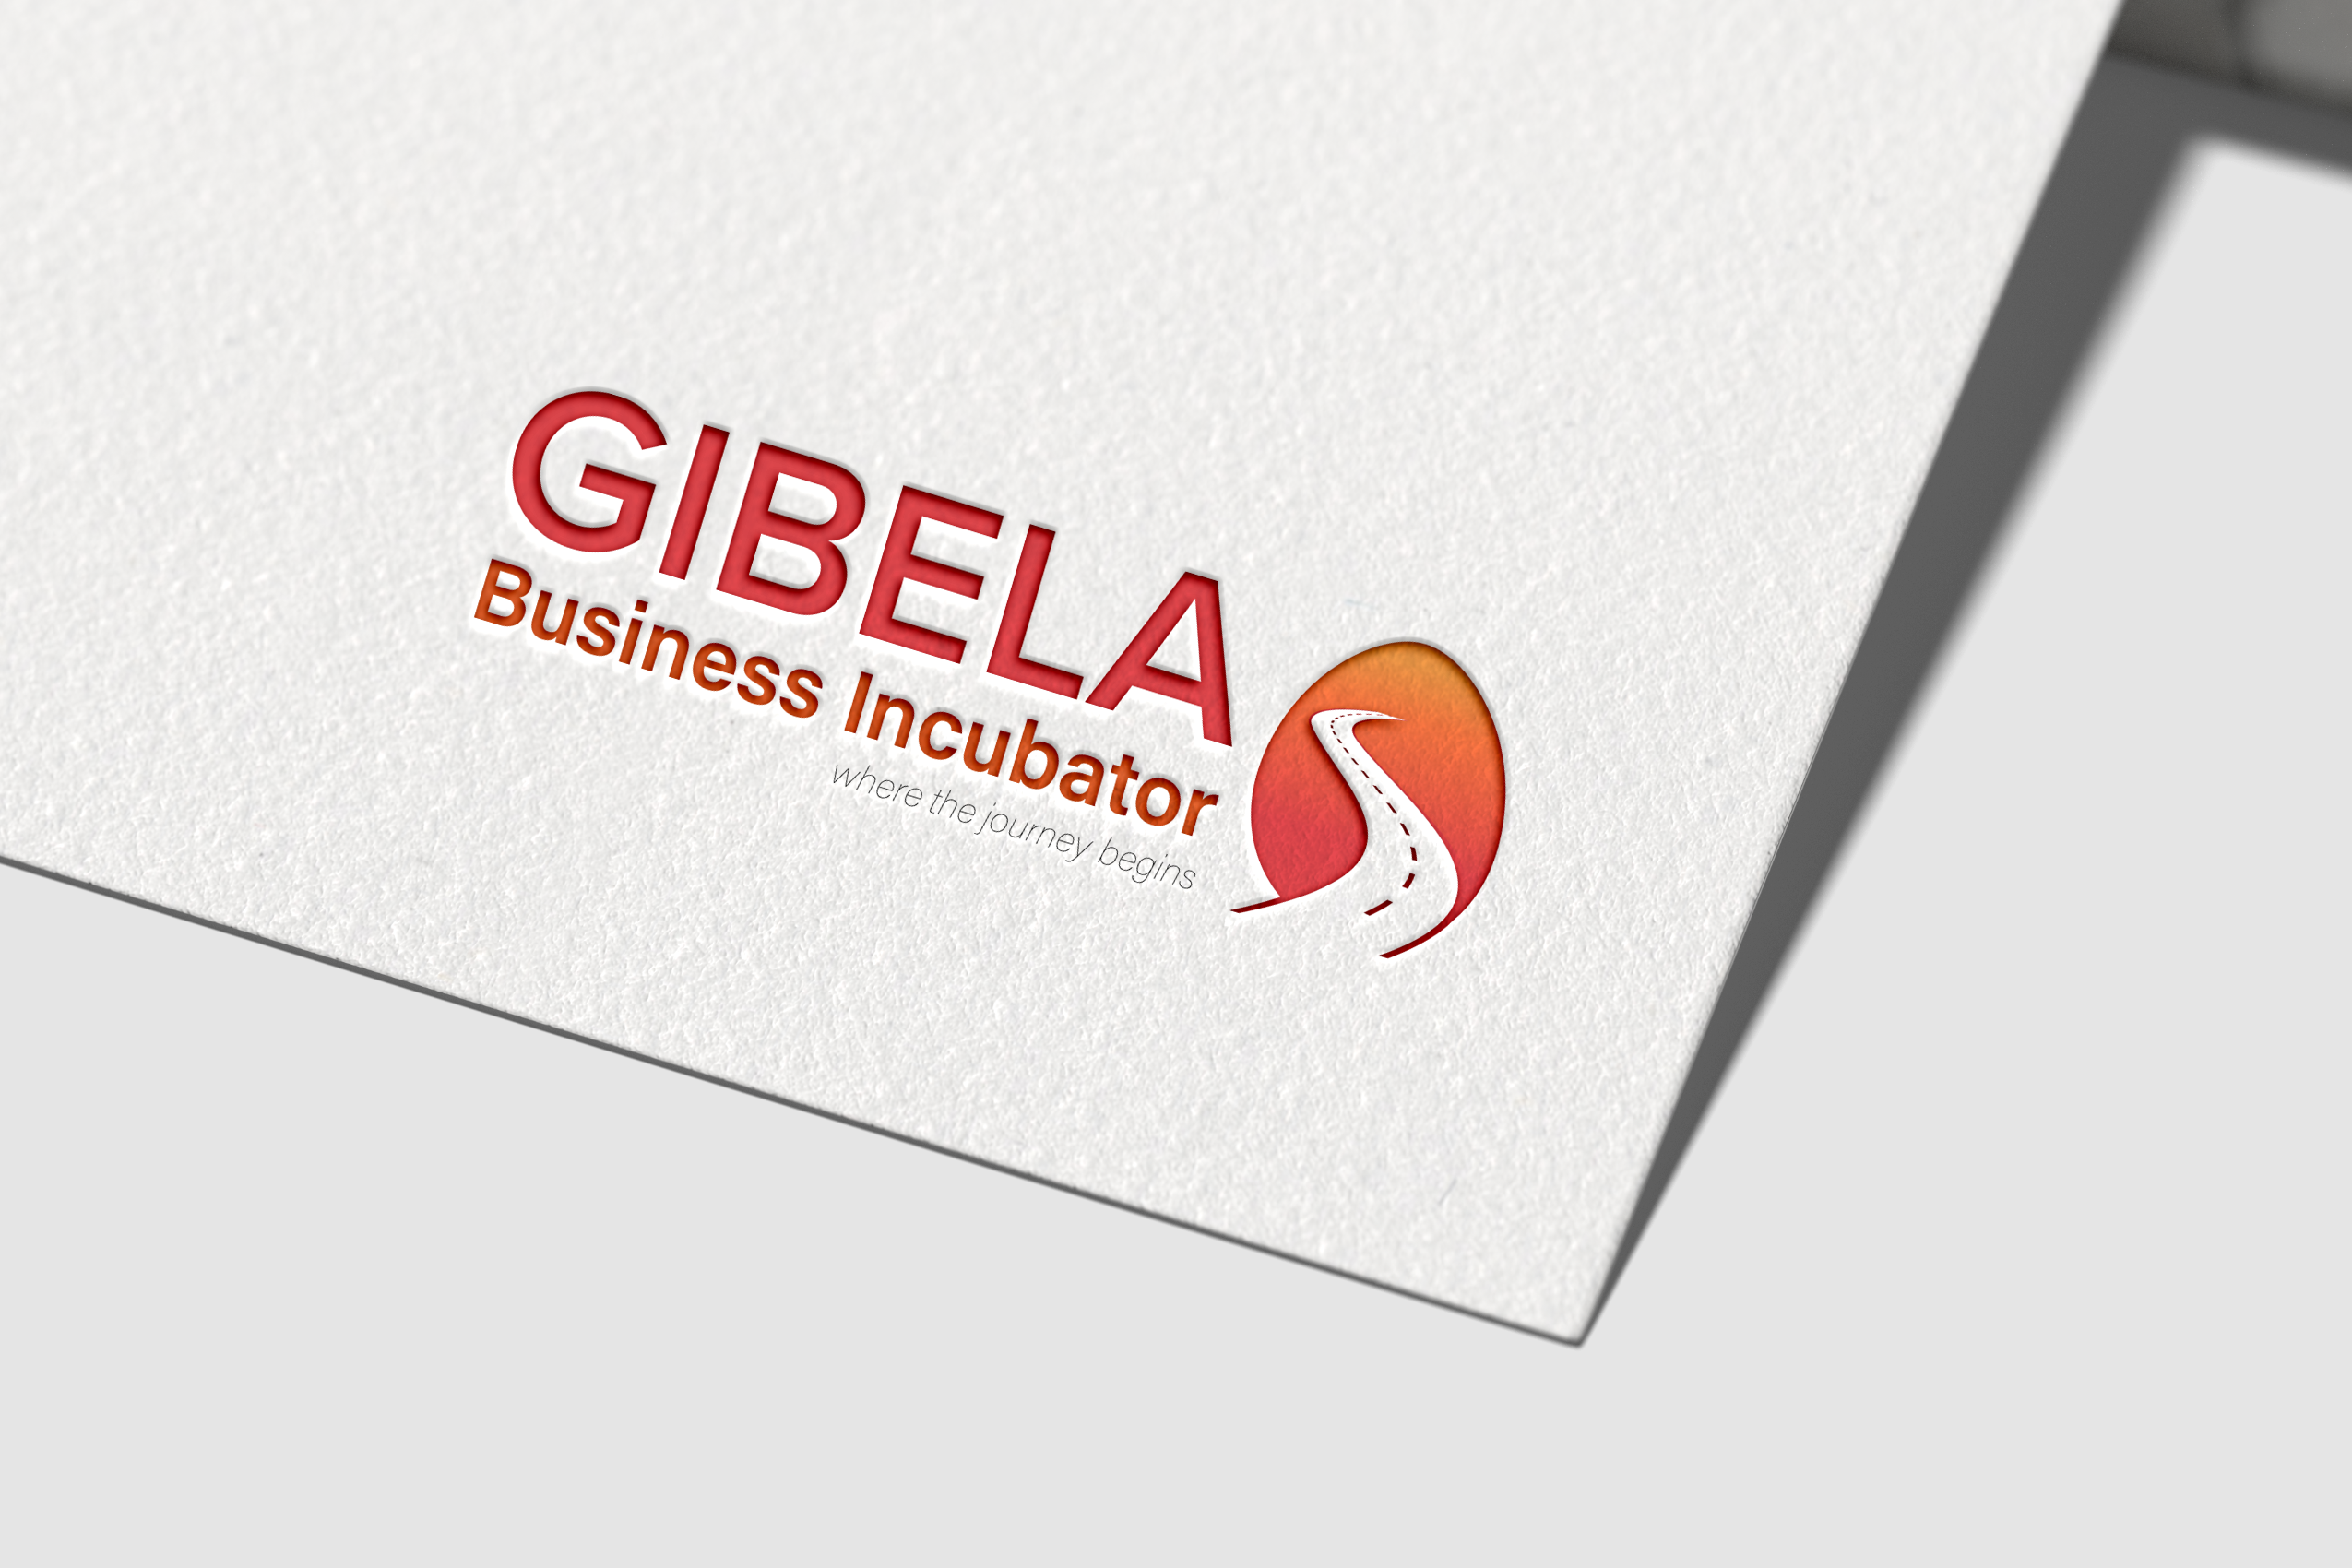 Gibela Business Incubator Logo on paper